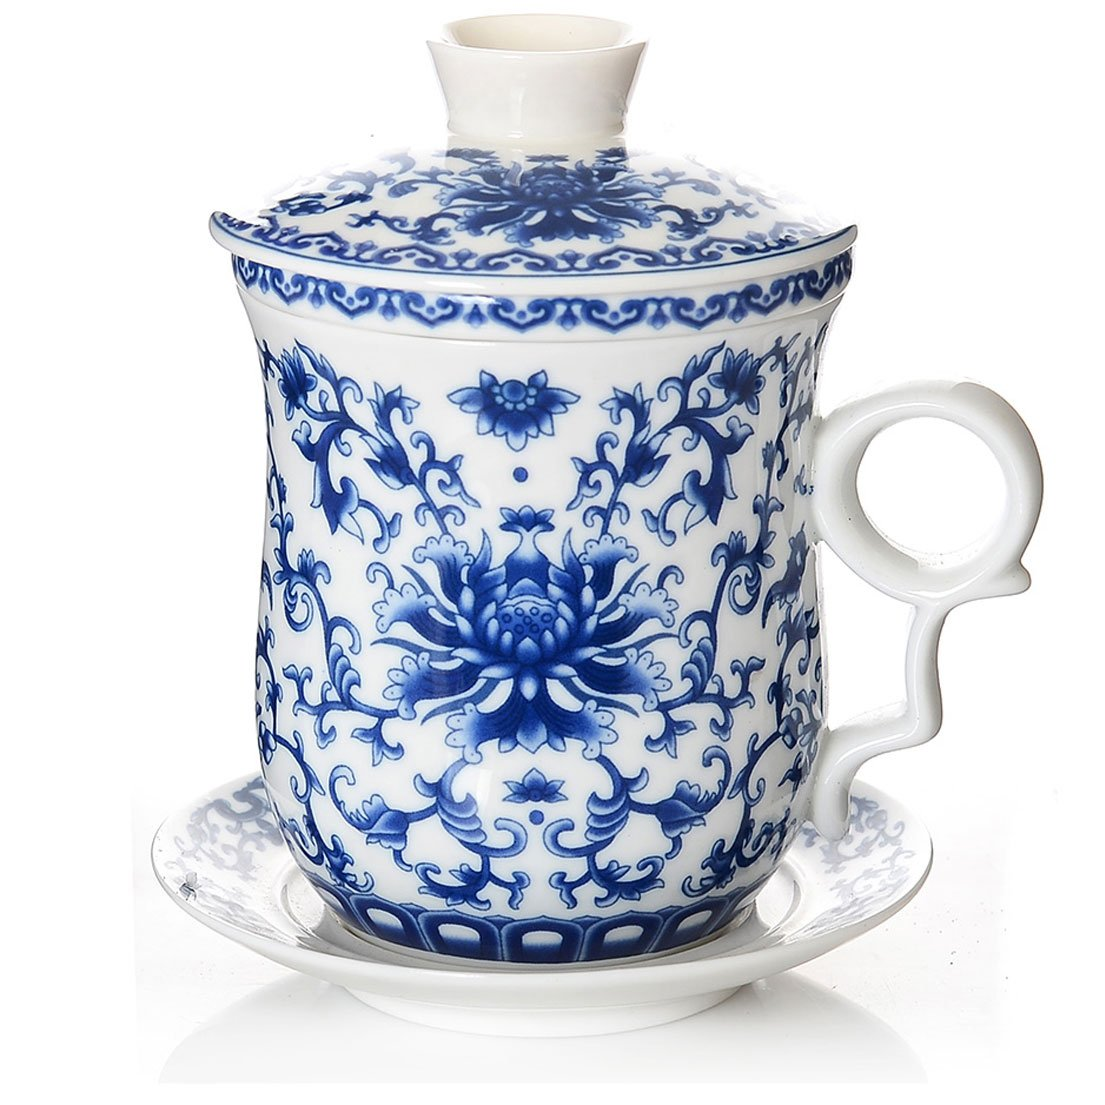 BandTie Convenient Travel Office Loose Leaf Tea Brewing System-Chinese Jingdezhen Blue and White Porcelain Tea Cup Infuser 4-Piece Set with Tea Cup Lid and Saucer ,Blue Peony Flowers